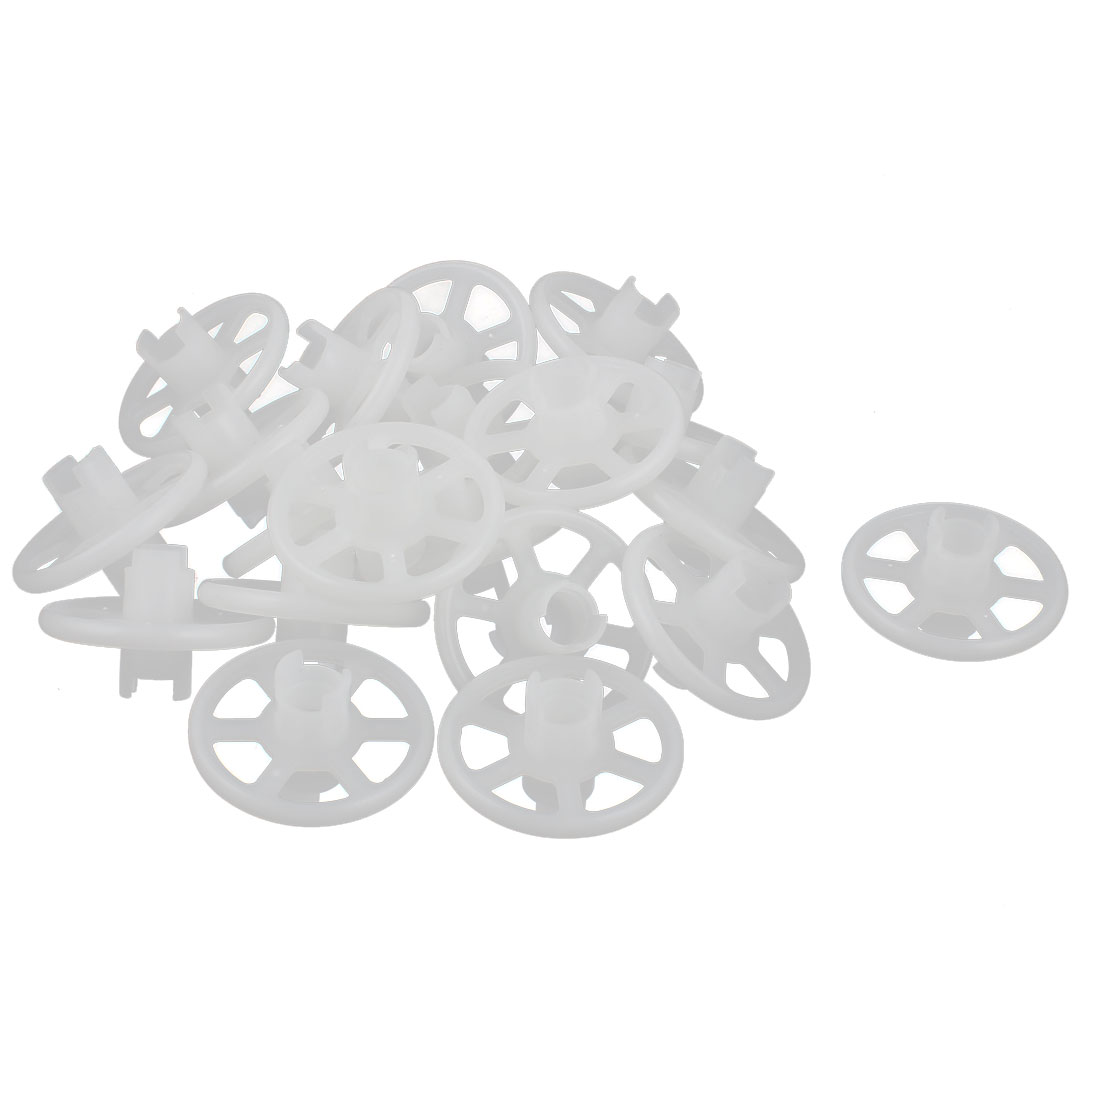 Replacement 9.5mm x 43mm x 28mm PCB Rubber Coating PP Wheels 20 Pcs